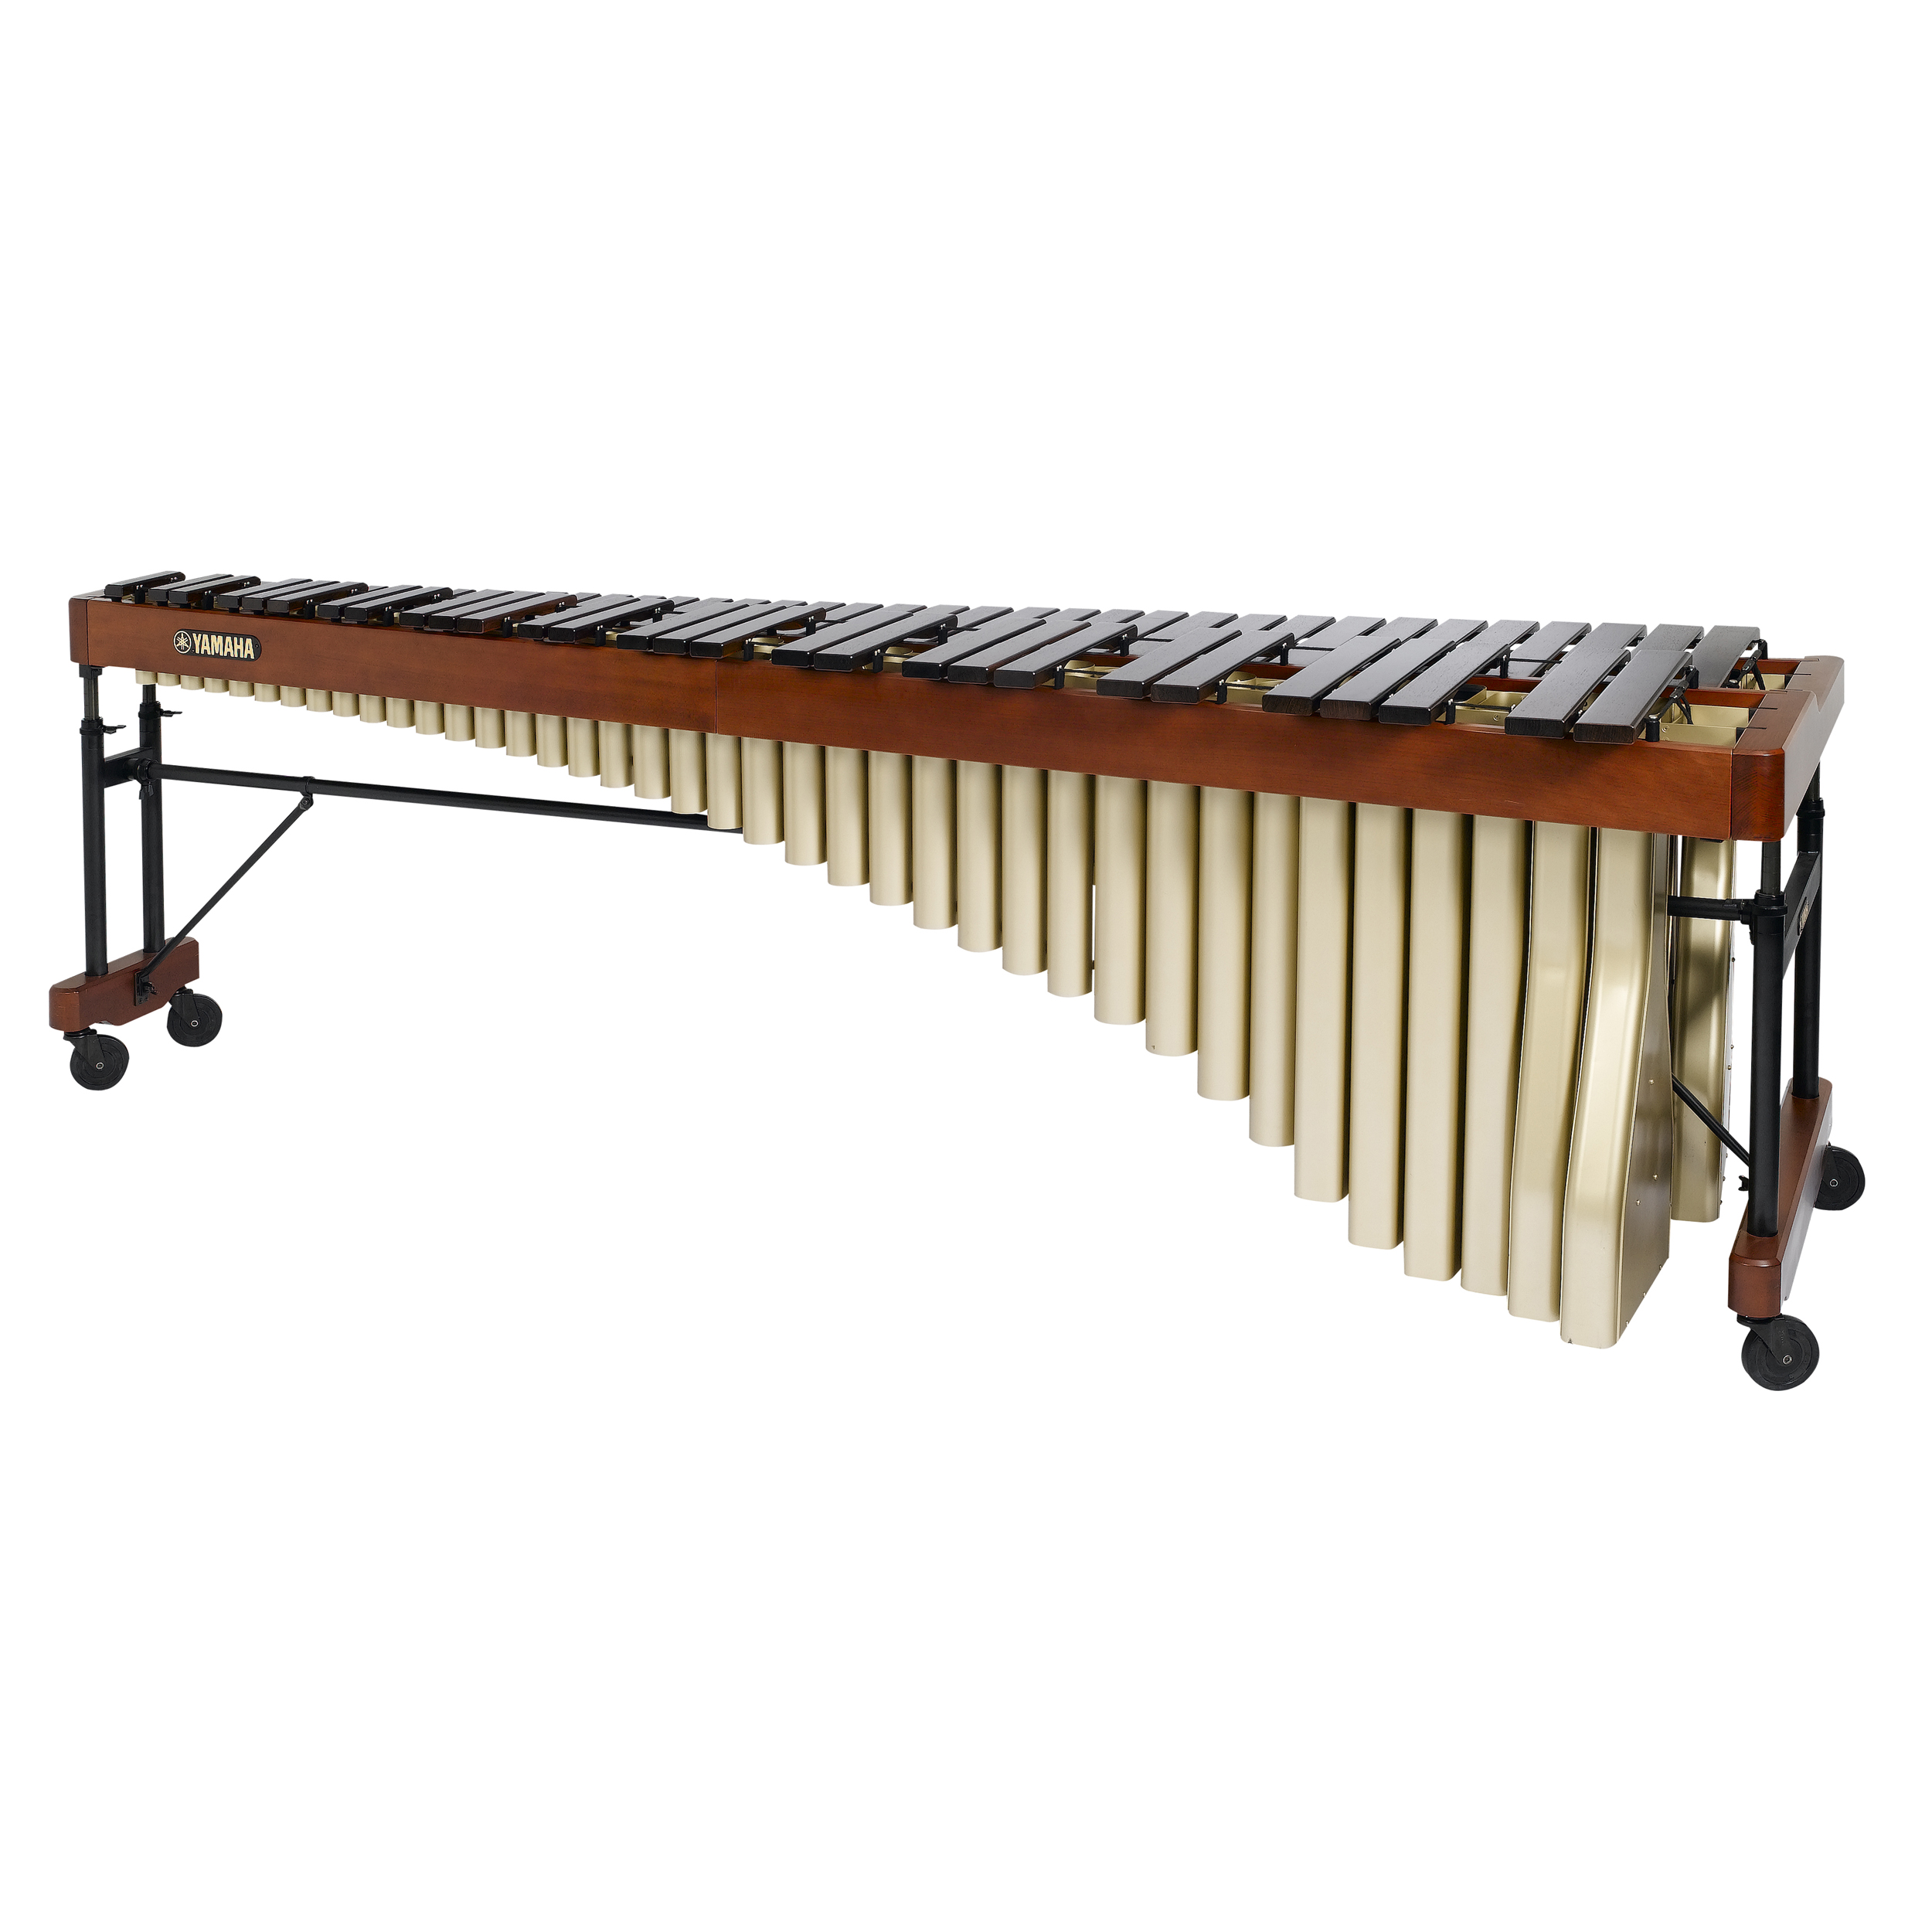 Yamaha 5.5 Rosewood Virtuoso Marimba with cover